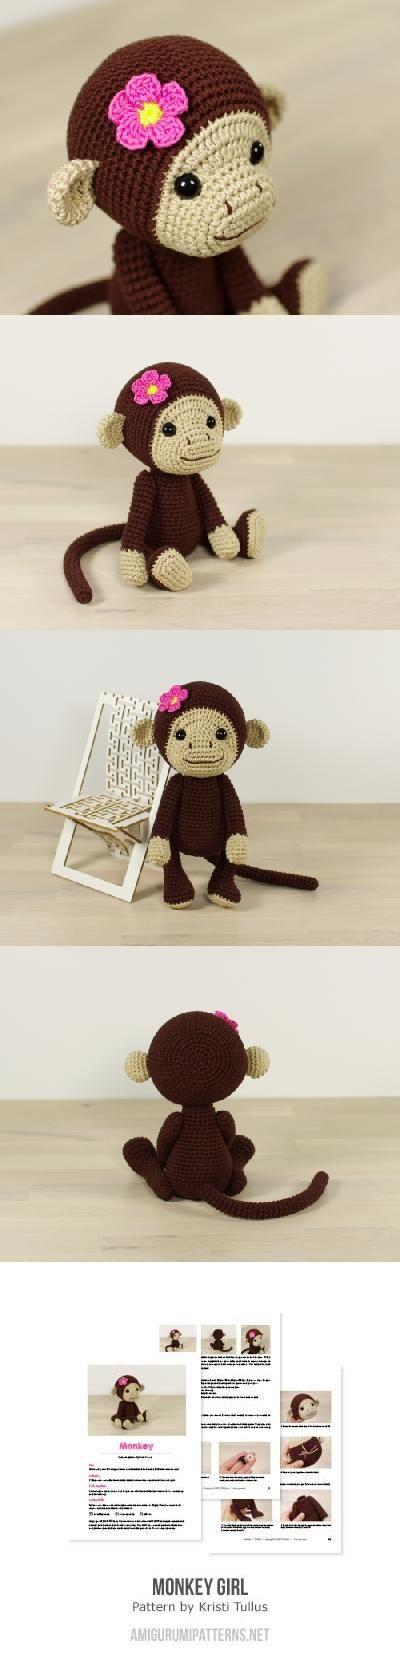 Monkey Girl Amigurumi Pattern